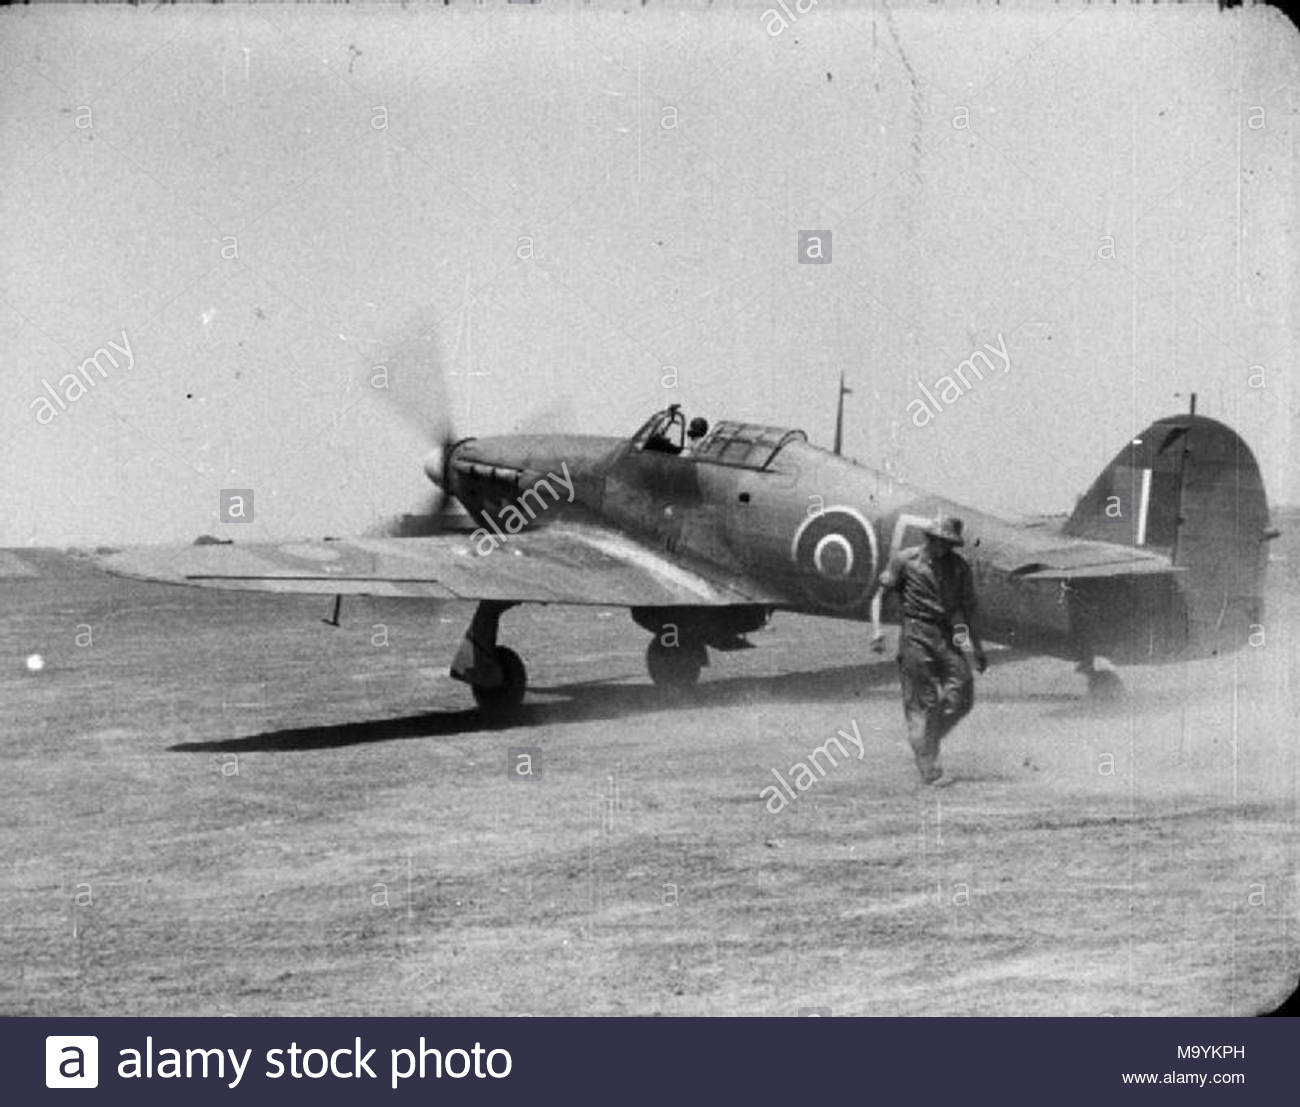 Royal Air Force Operations In The Far East 1941 1945 Hawker Hurricane Mark IIC HV843 Of No 79 Squadron RAF Taxying At An Airfield India